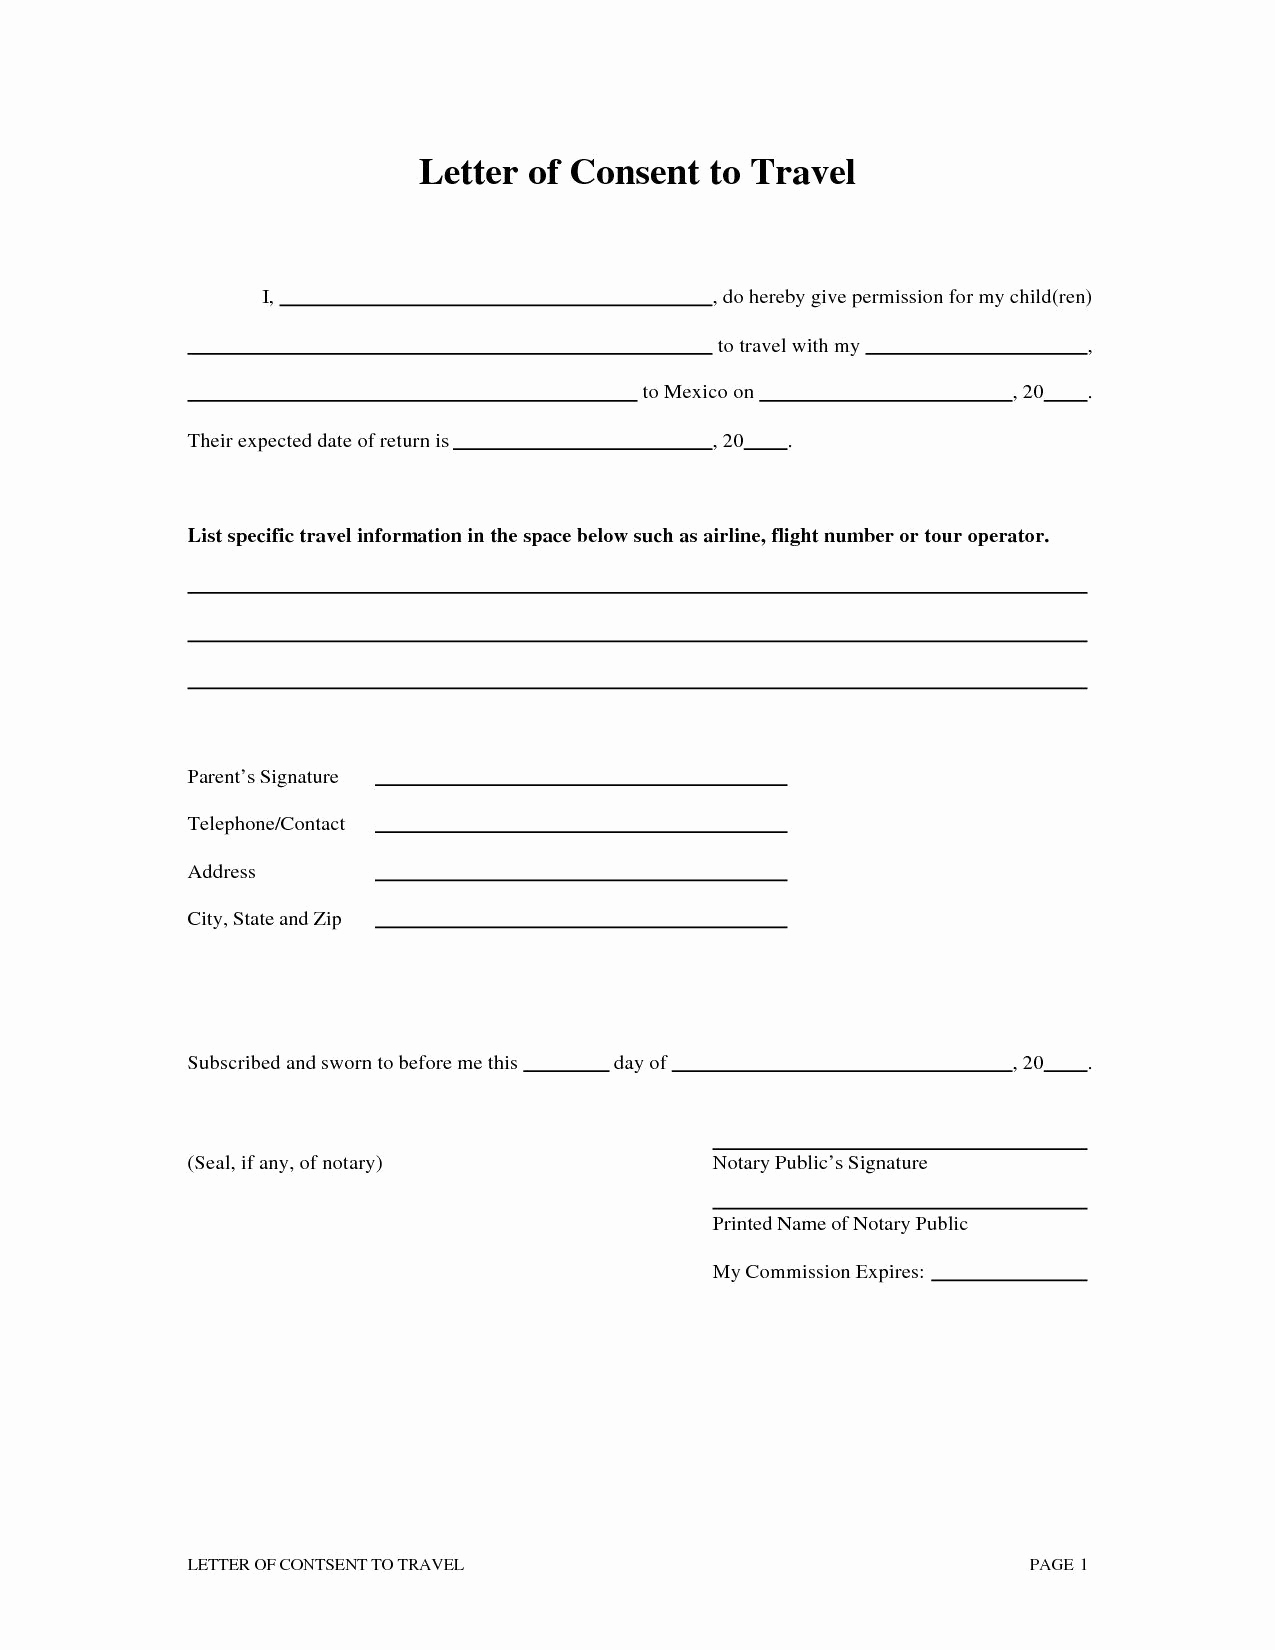 Travel Consent Letter Template - Free Medical Consent form Child Medical Consent form Authorization